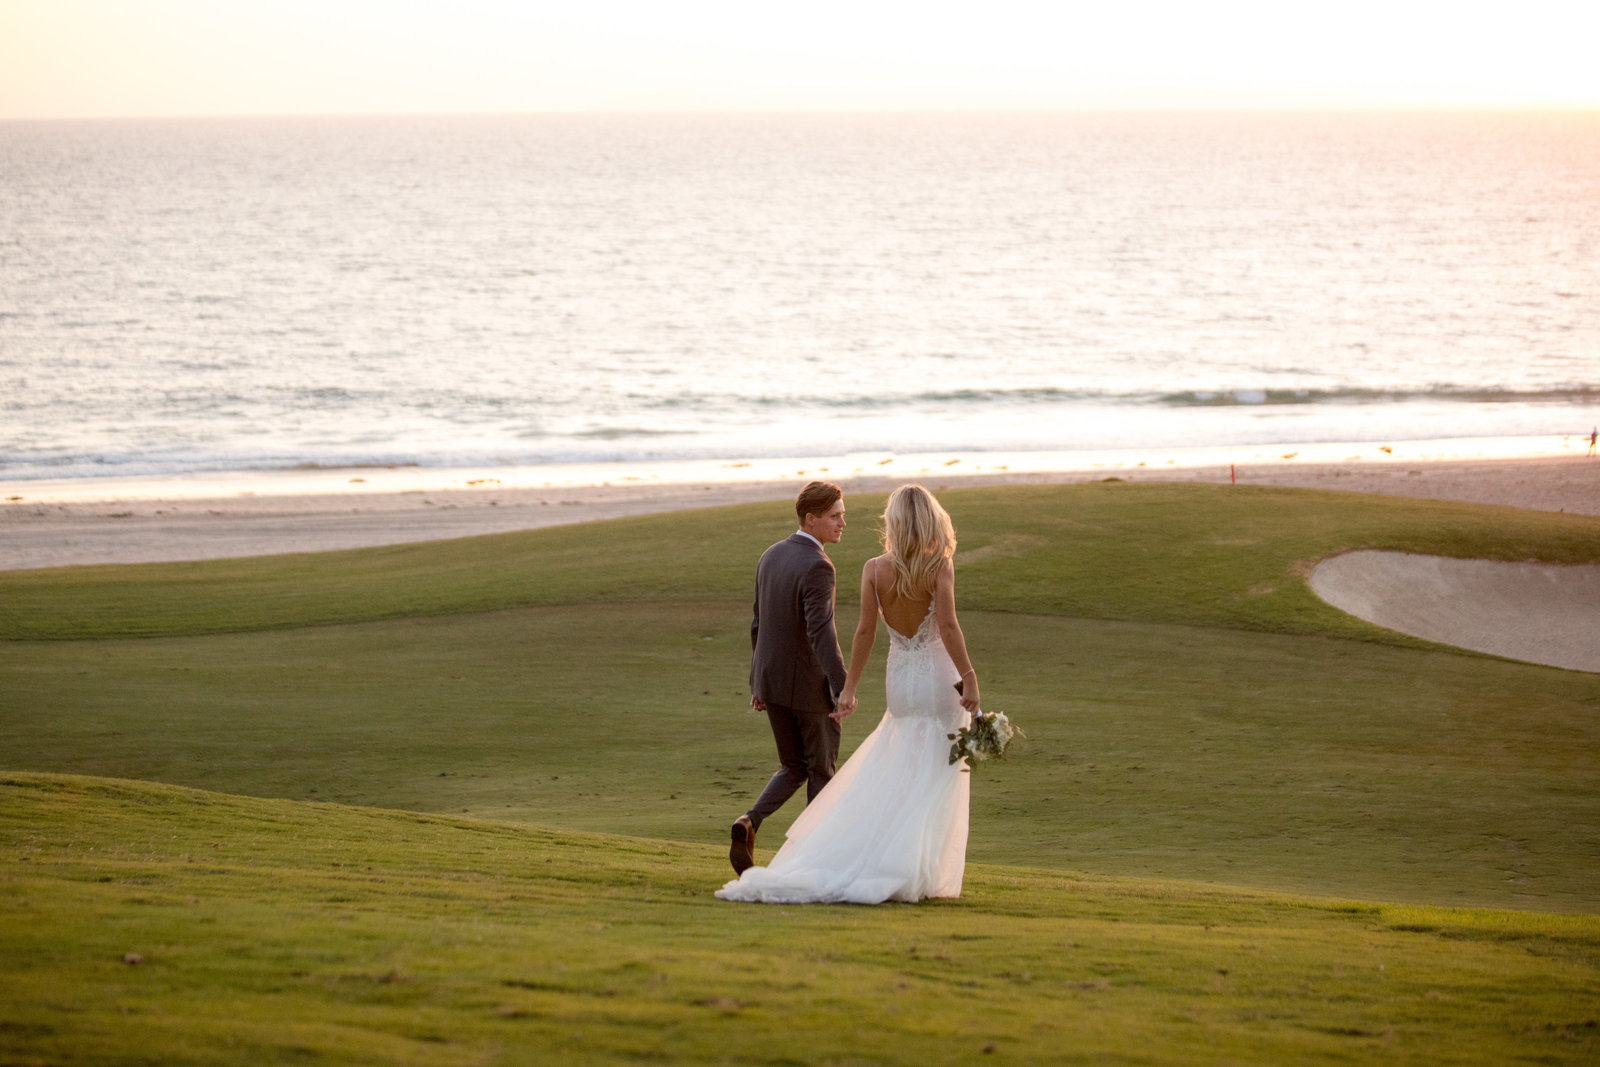 bride and groom walking on golf course with beach view